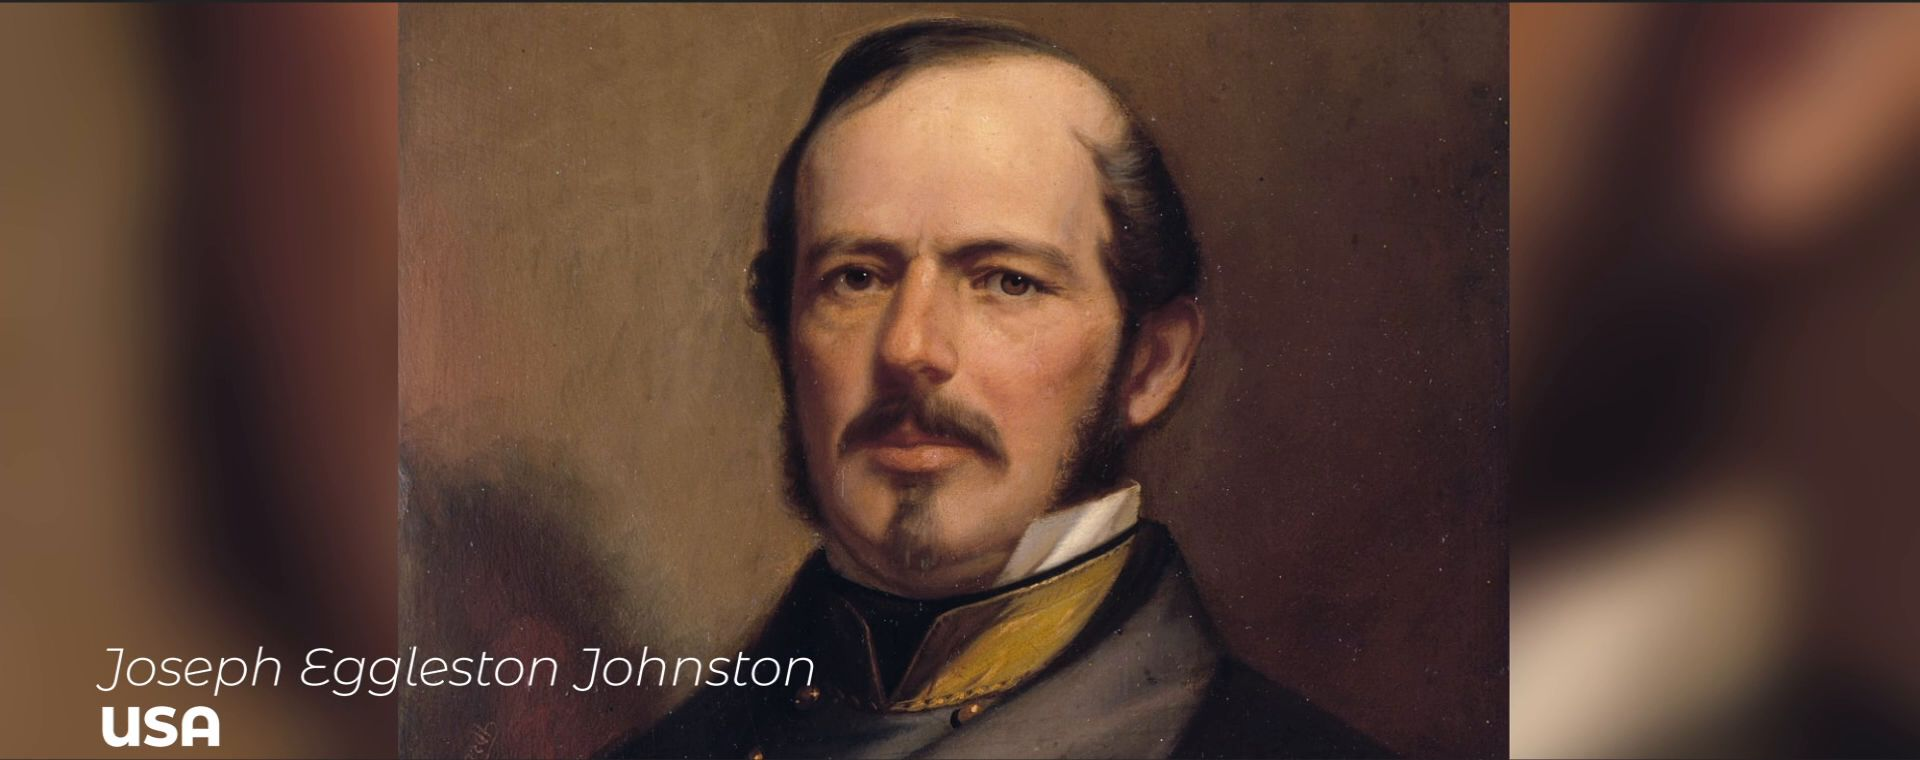 JOSEPH EGGLESTON JOHNSTON